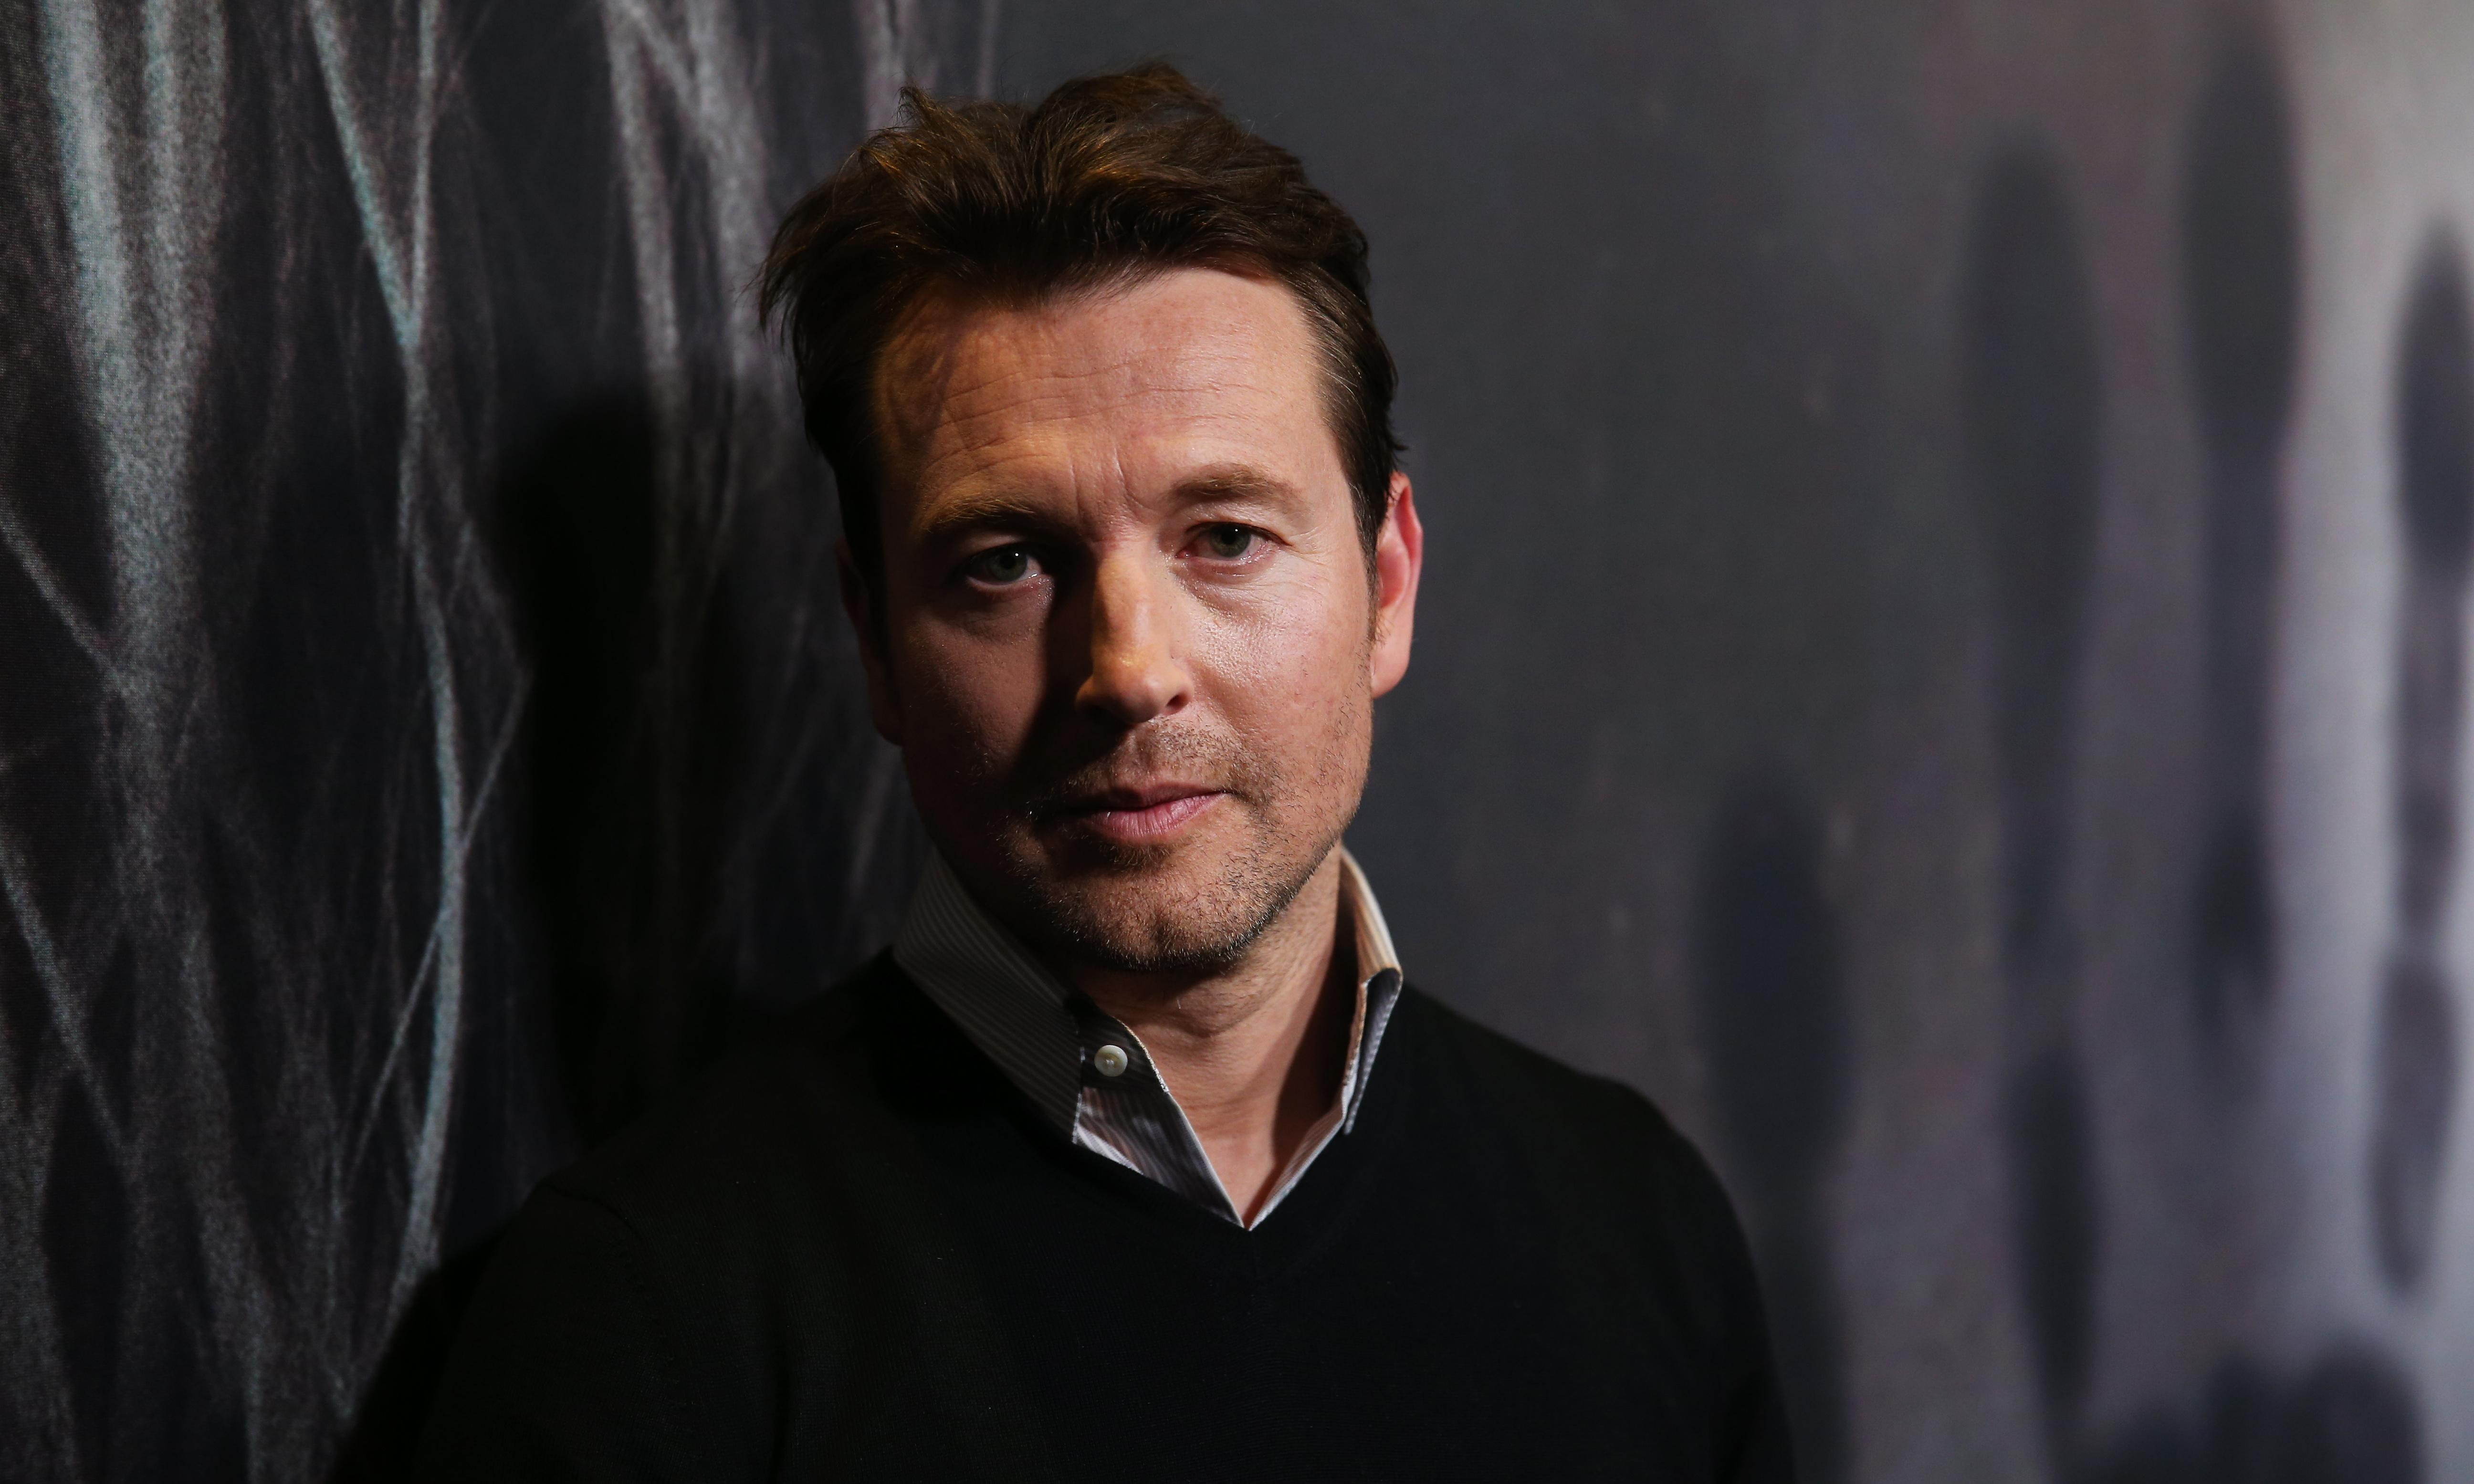 Leigh Whannell on reinventing The Invisible Man: 'I want to change people's perceptions'